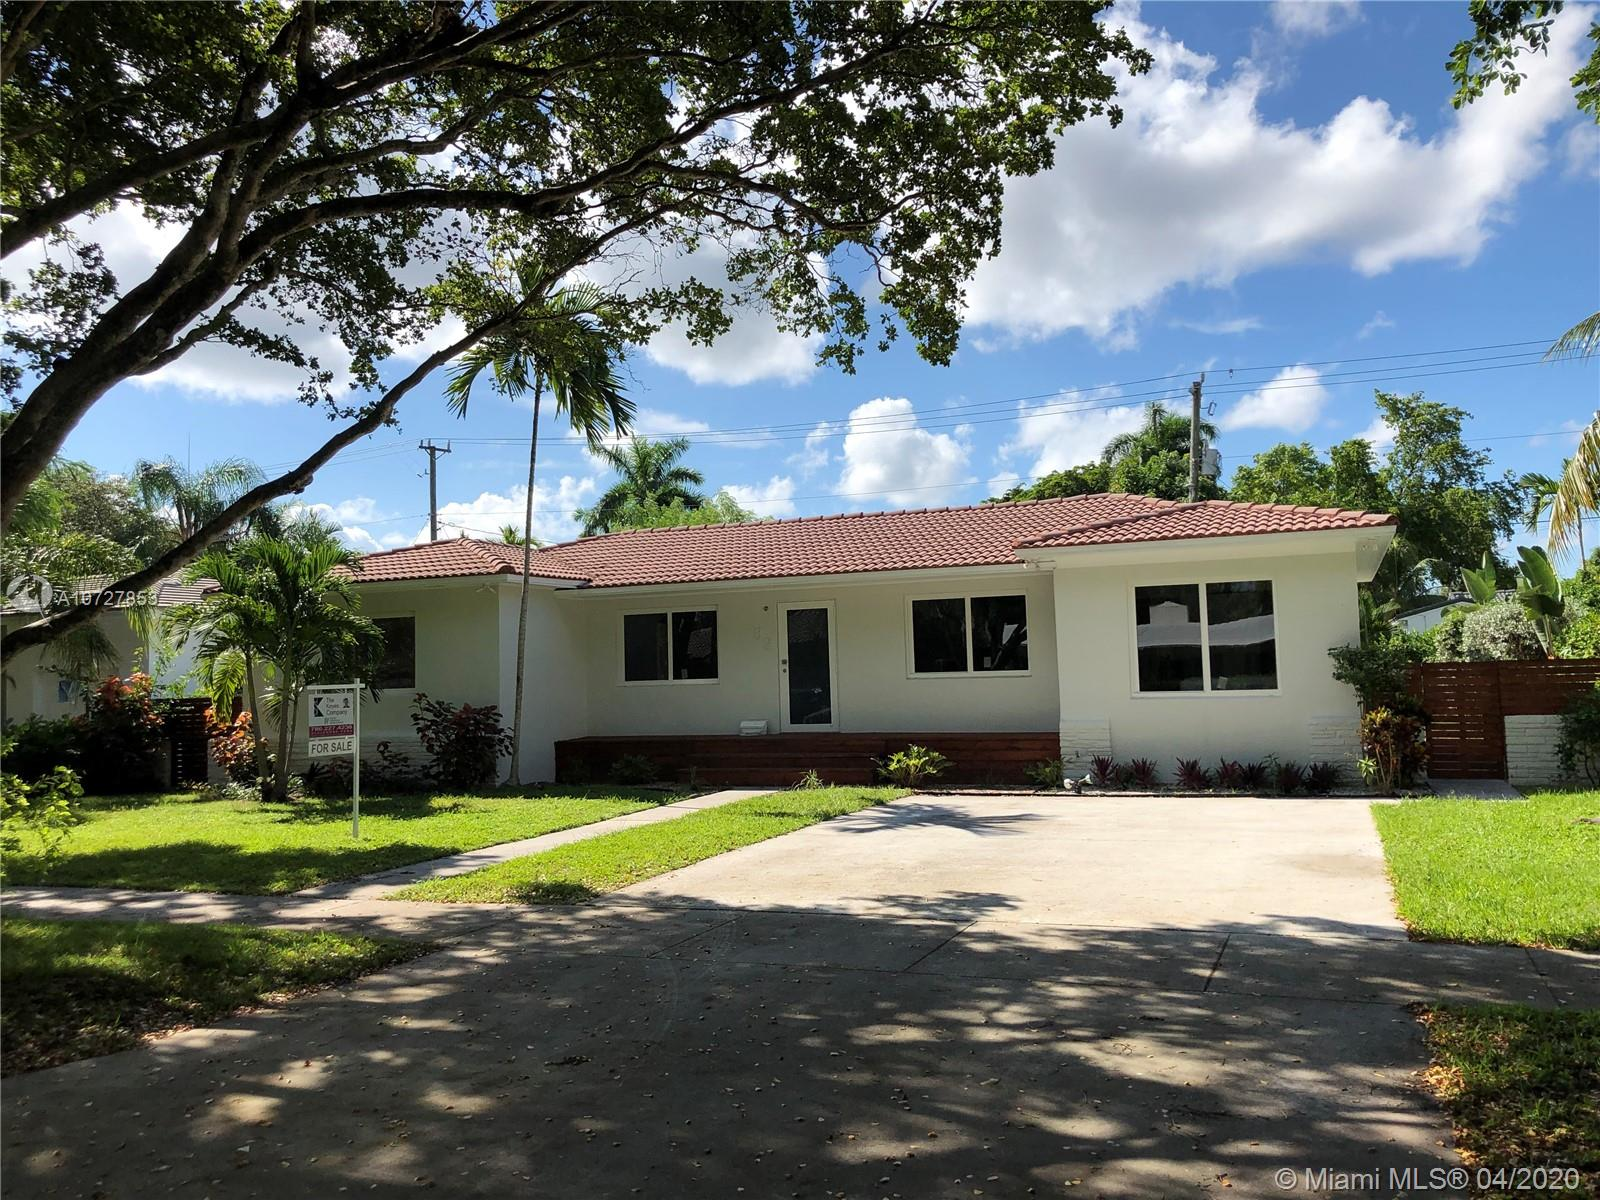 82 NW 98th St, Miami Shores, Florida